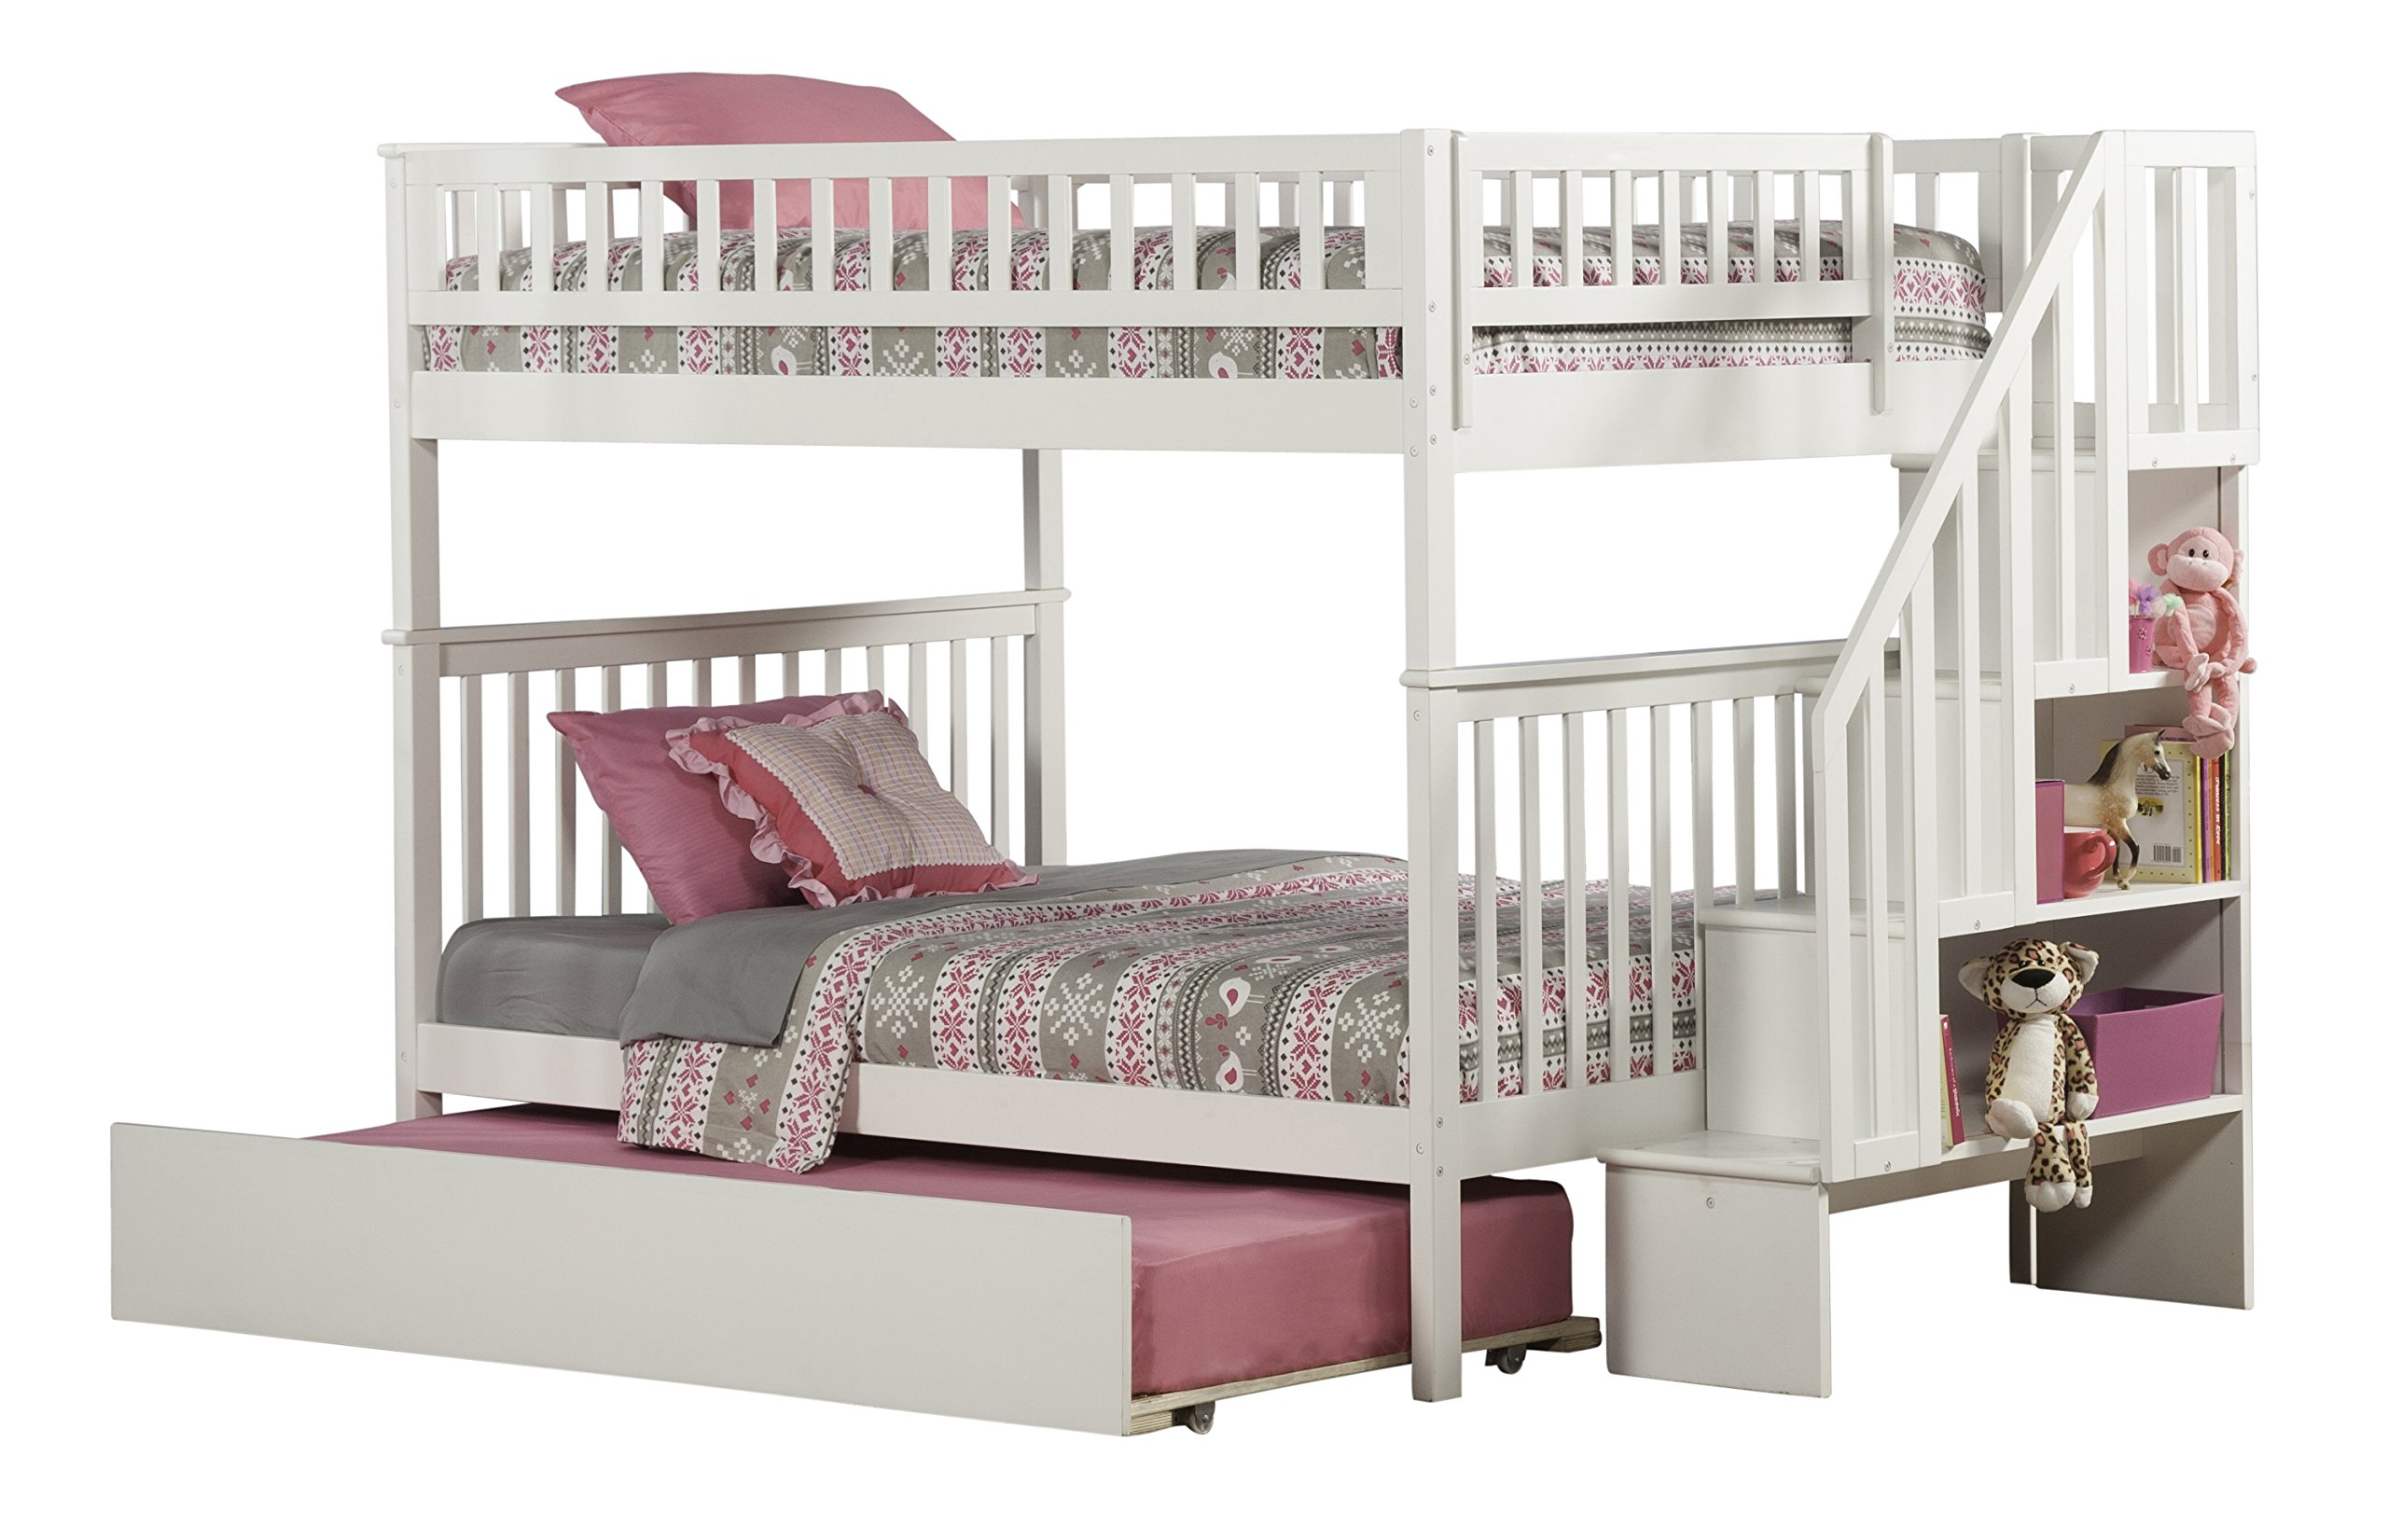 Woodland Staircase Bunk Bed with Urban Trundle, White, Full Over Full